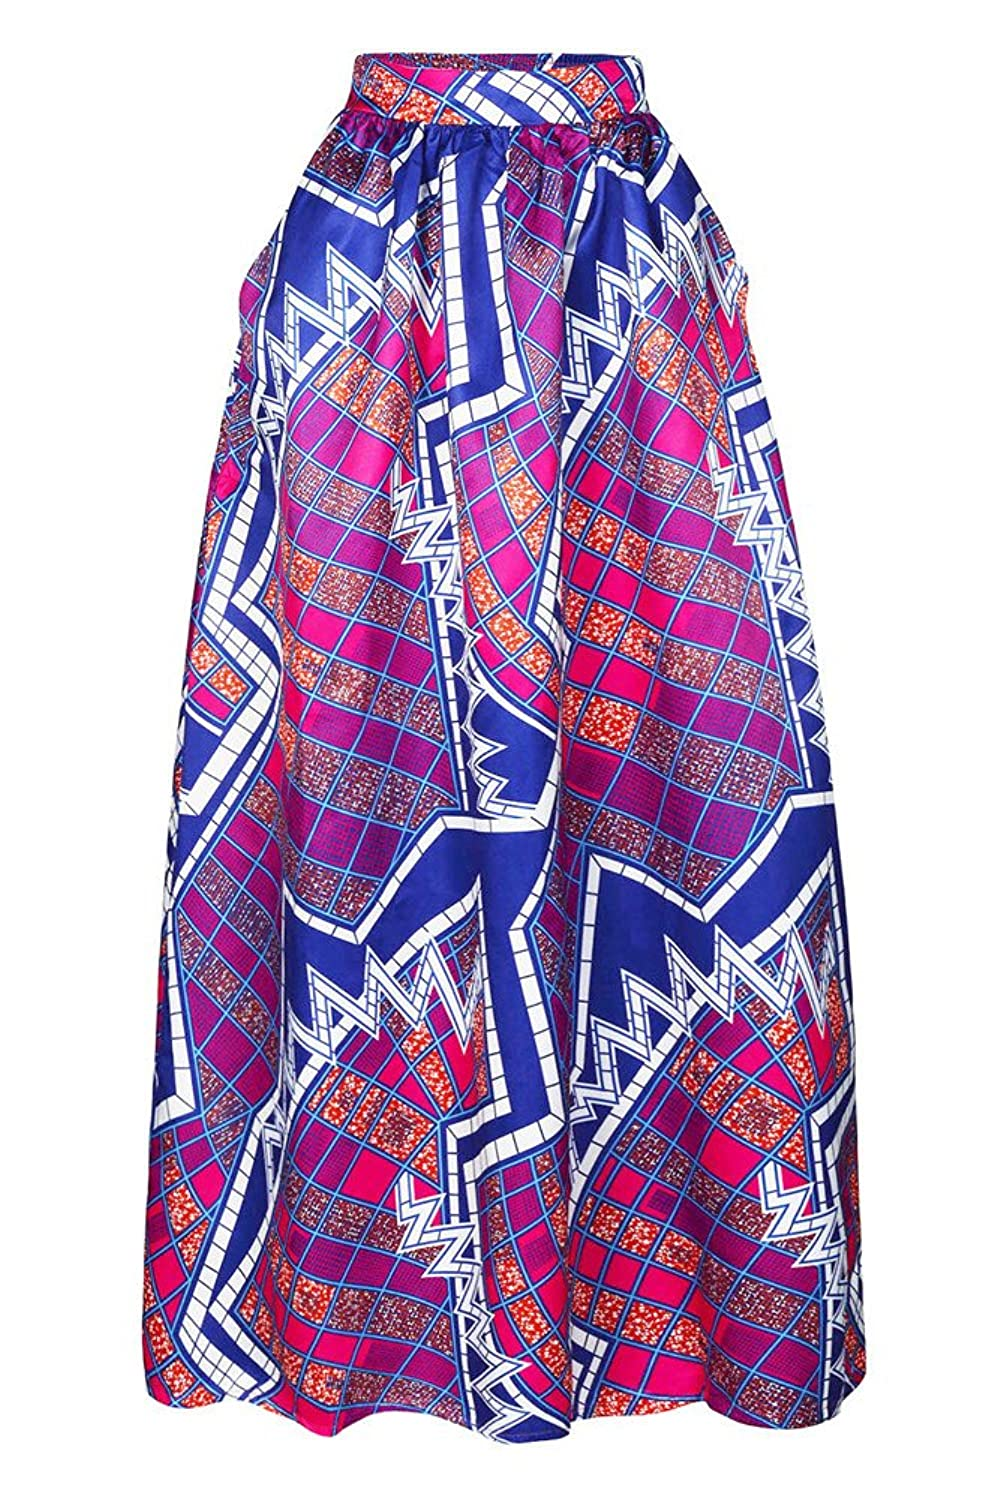 VIGVOG Women's Ethnic Plus-Size African Print Pull-on Pleated Long A-line Skirt (XL, F)